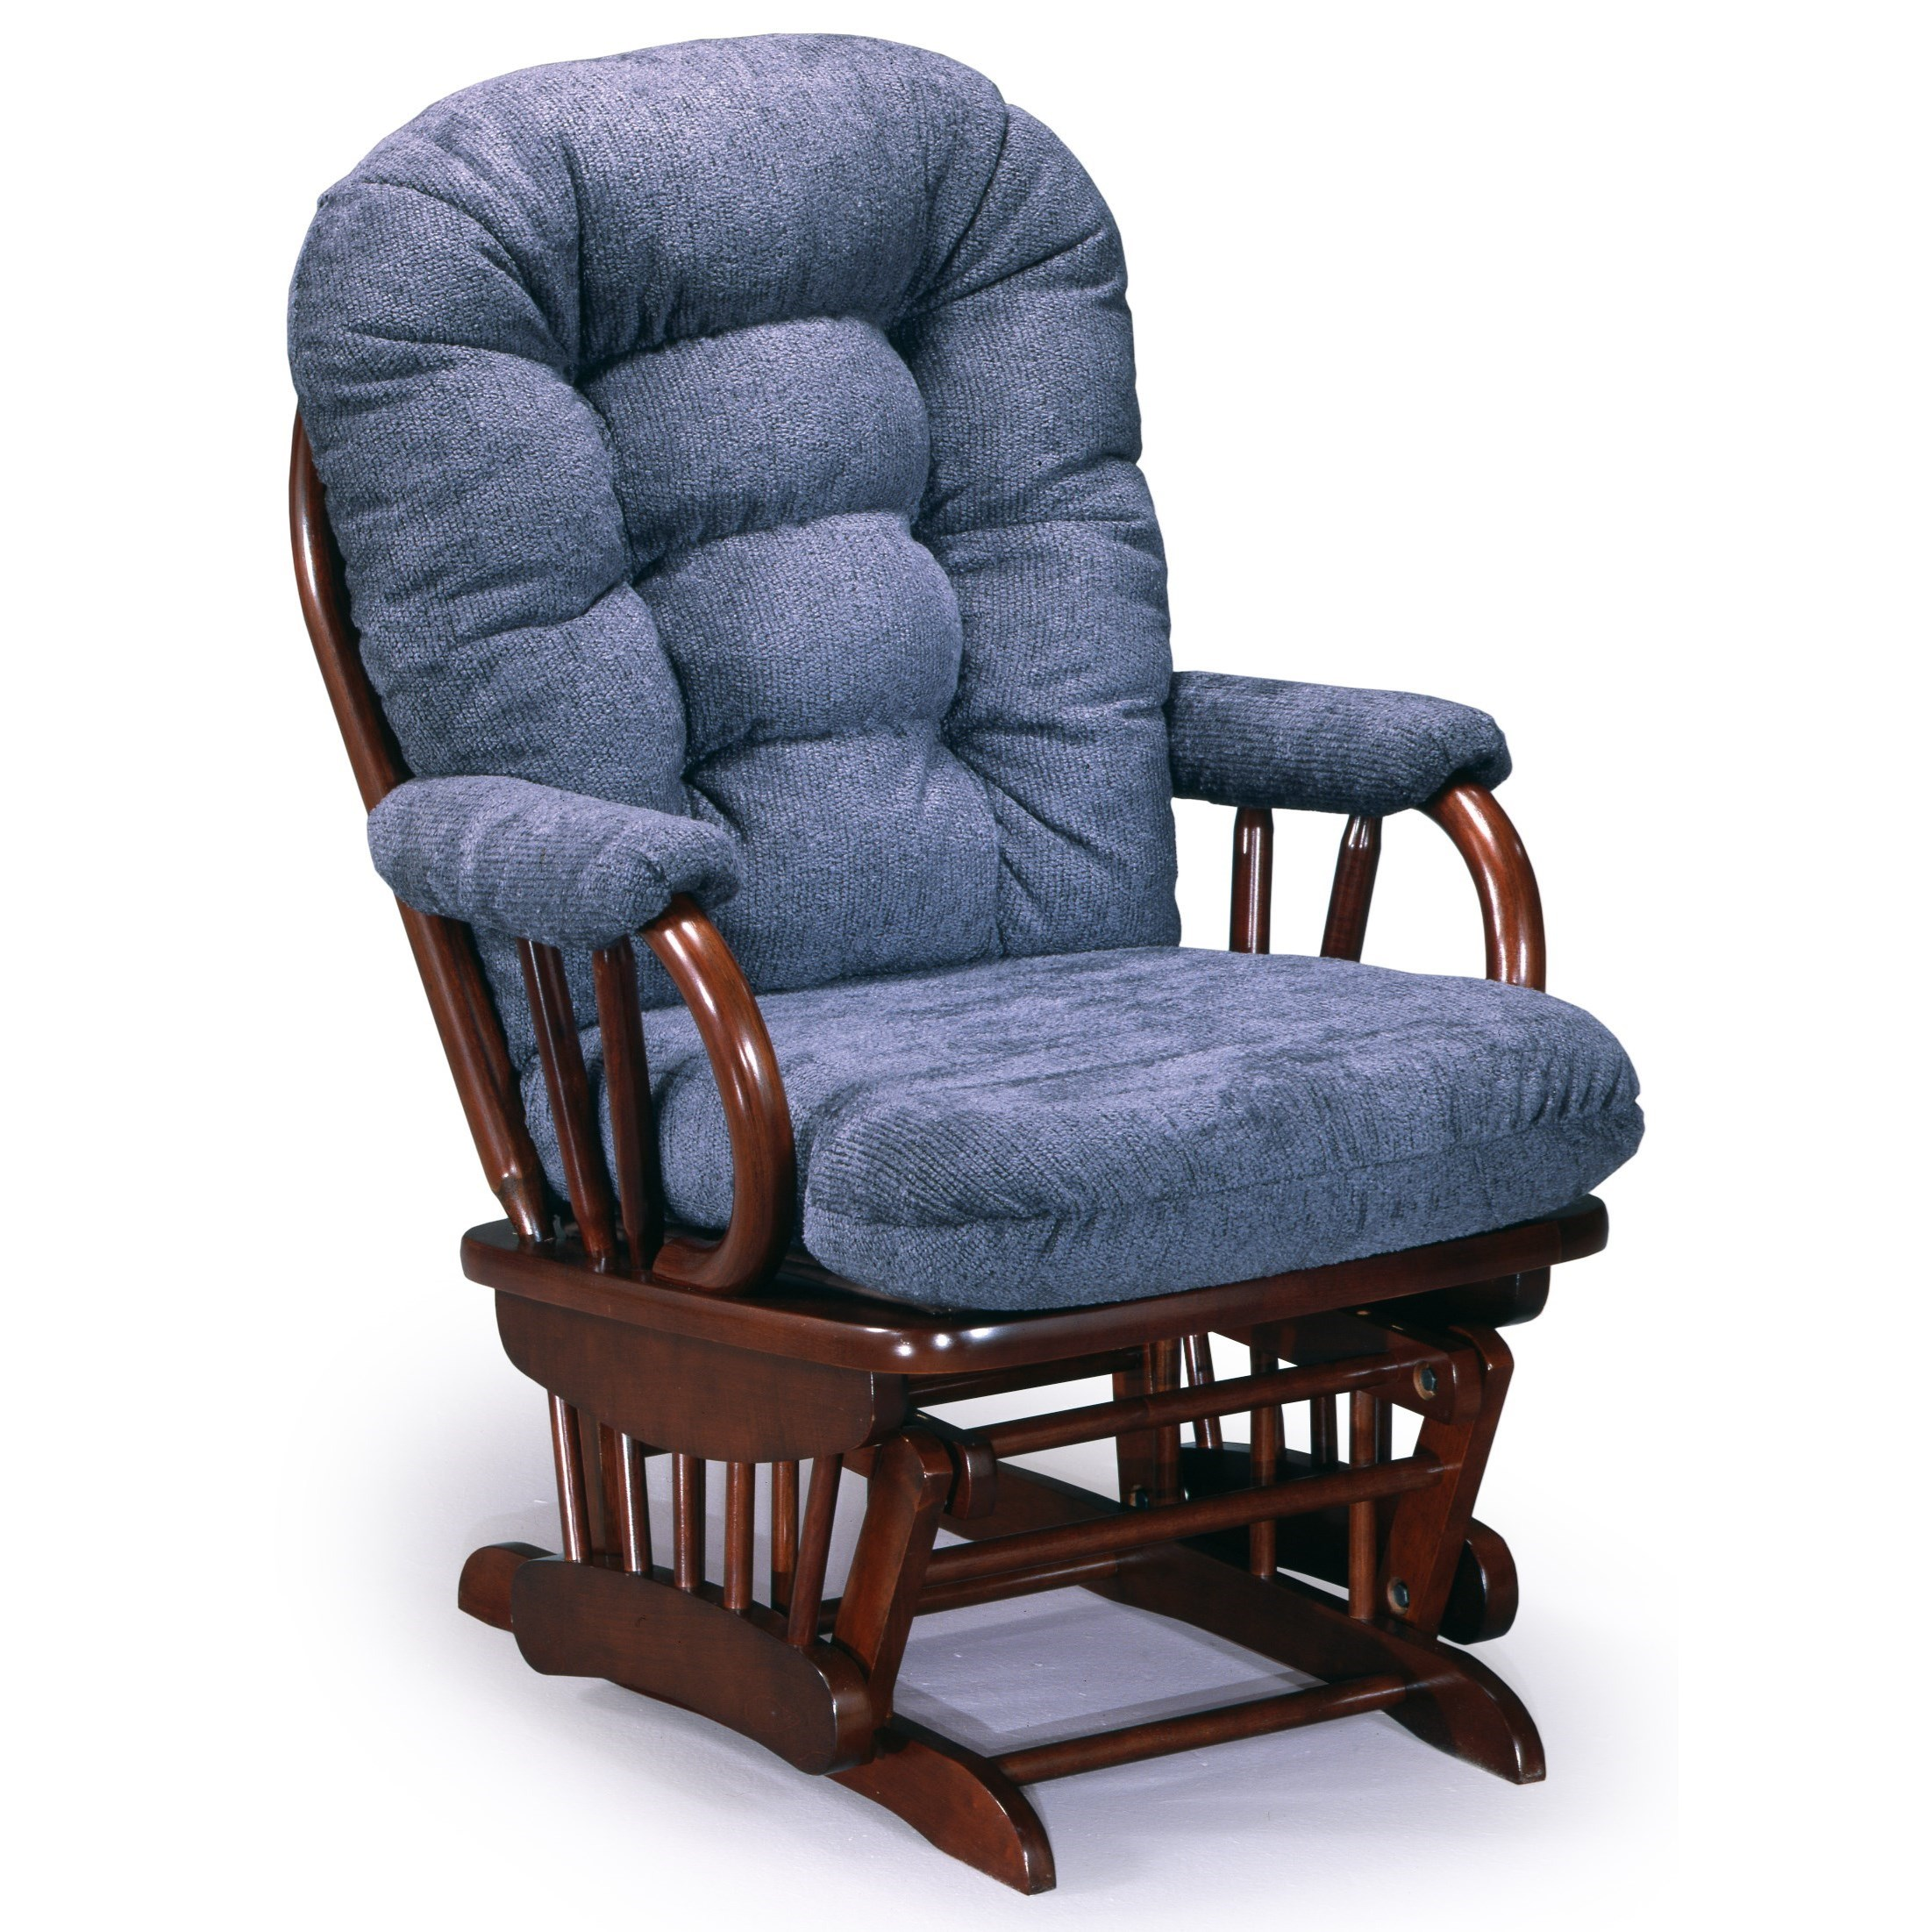 Gliding Rocking Chair Best Home Furnishings Glider Rockers Sona Glider Rocker